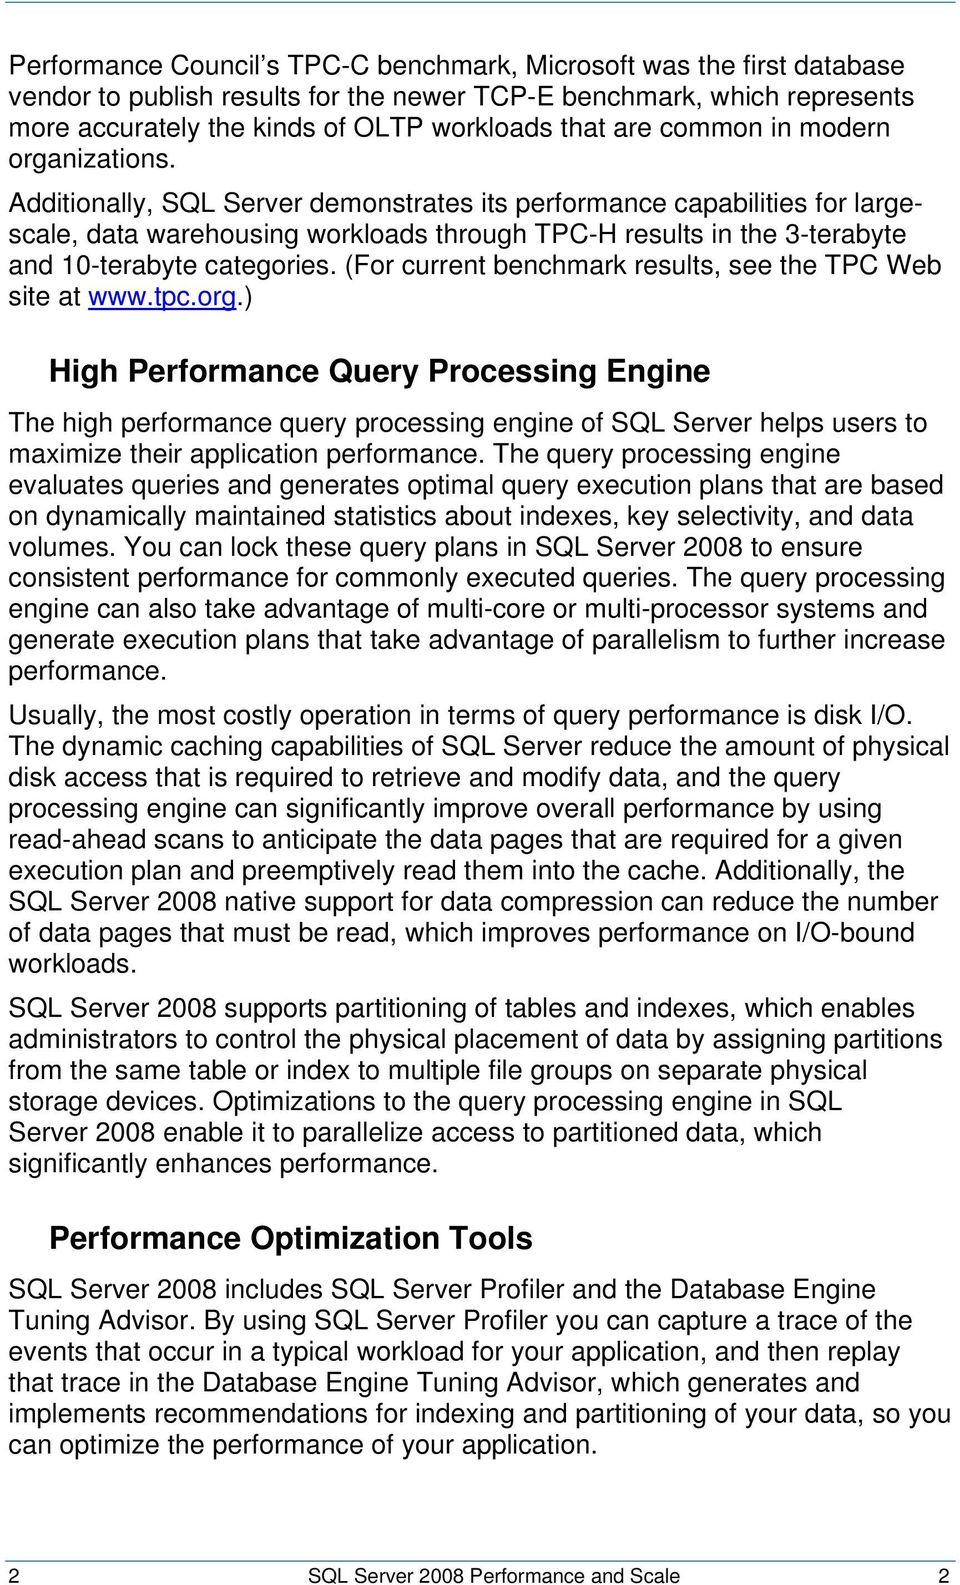 Additionally, SQL Server demonstrates its performance capabilities for largescale, data warehousing workloads through TPC-H results in the 3-terabyte and 10-terabyte categories.